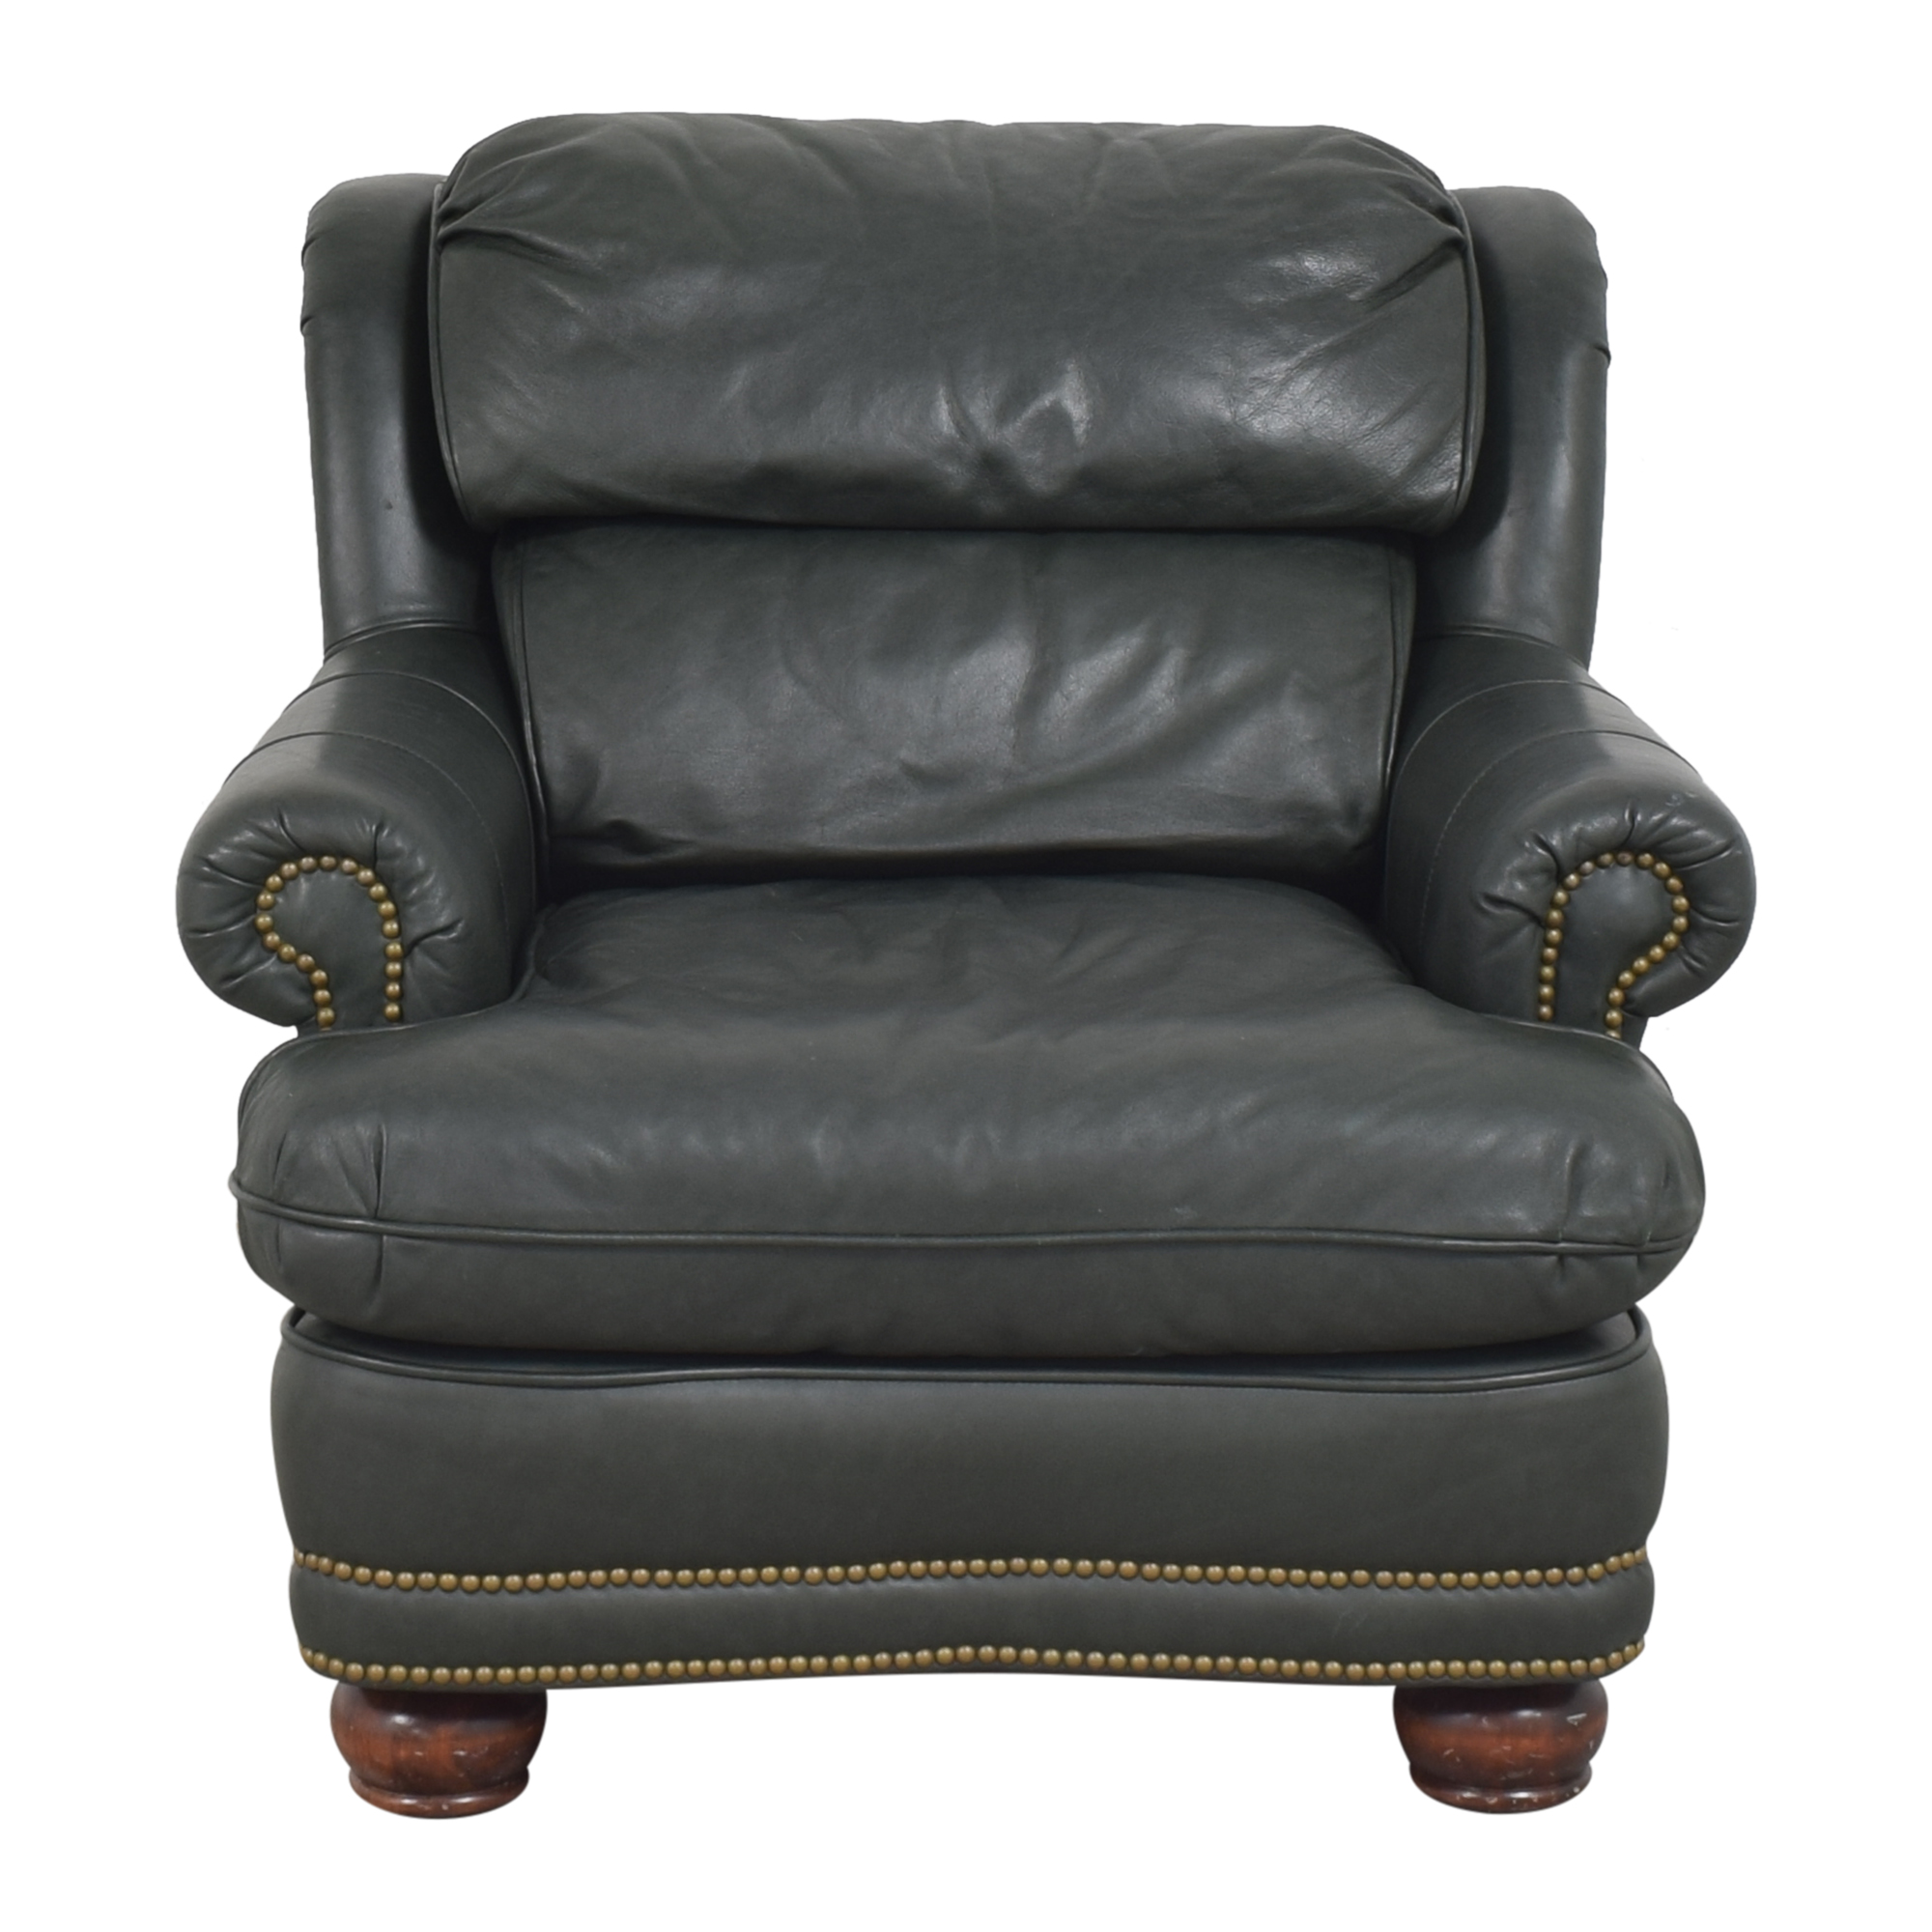 King Hickory Club Chair with Ottoman King Hickory